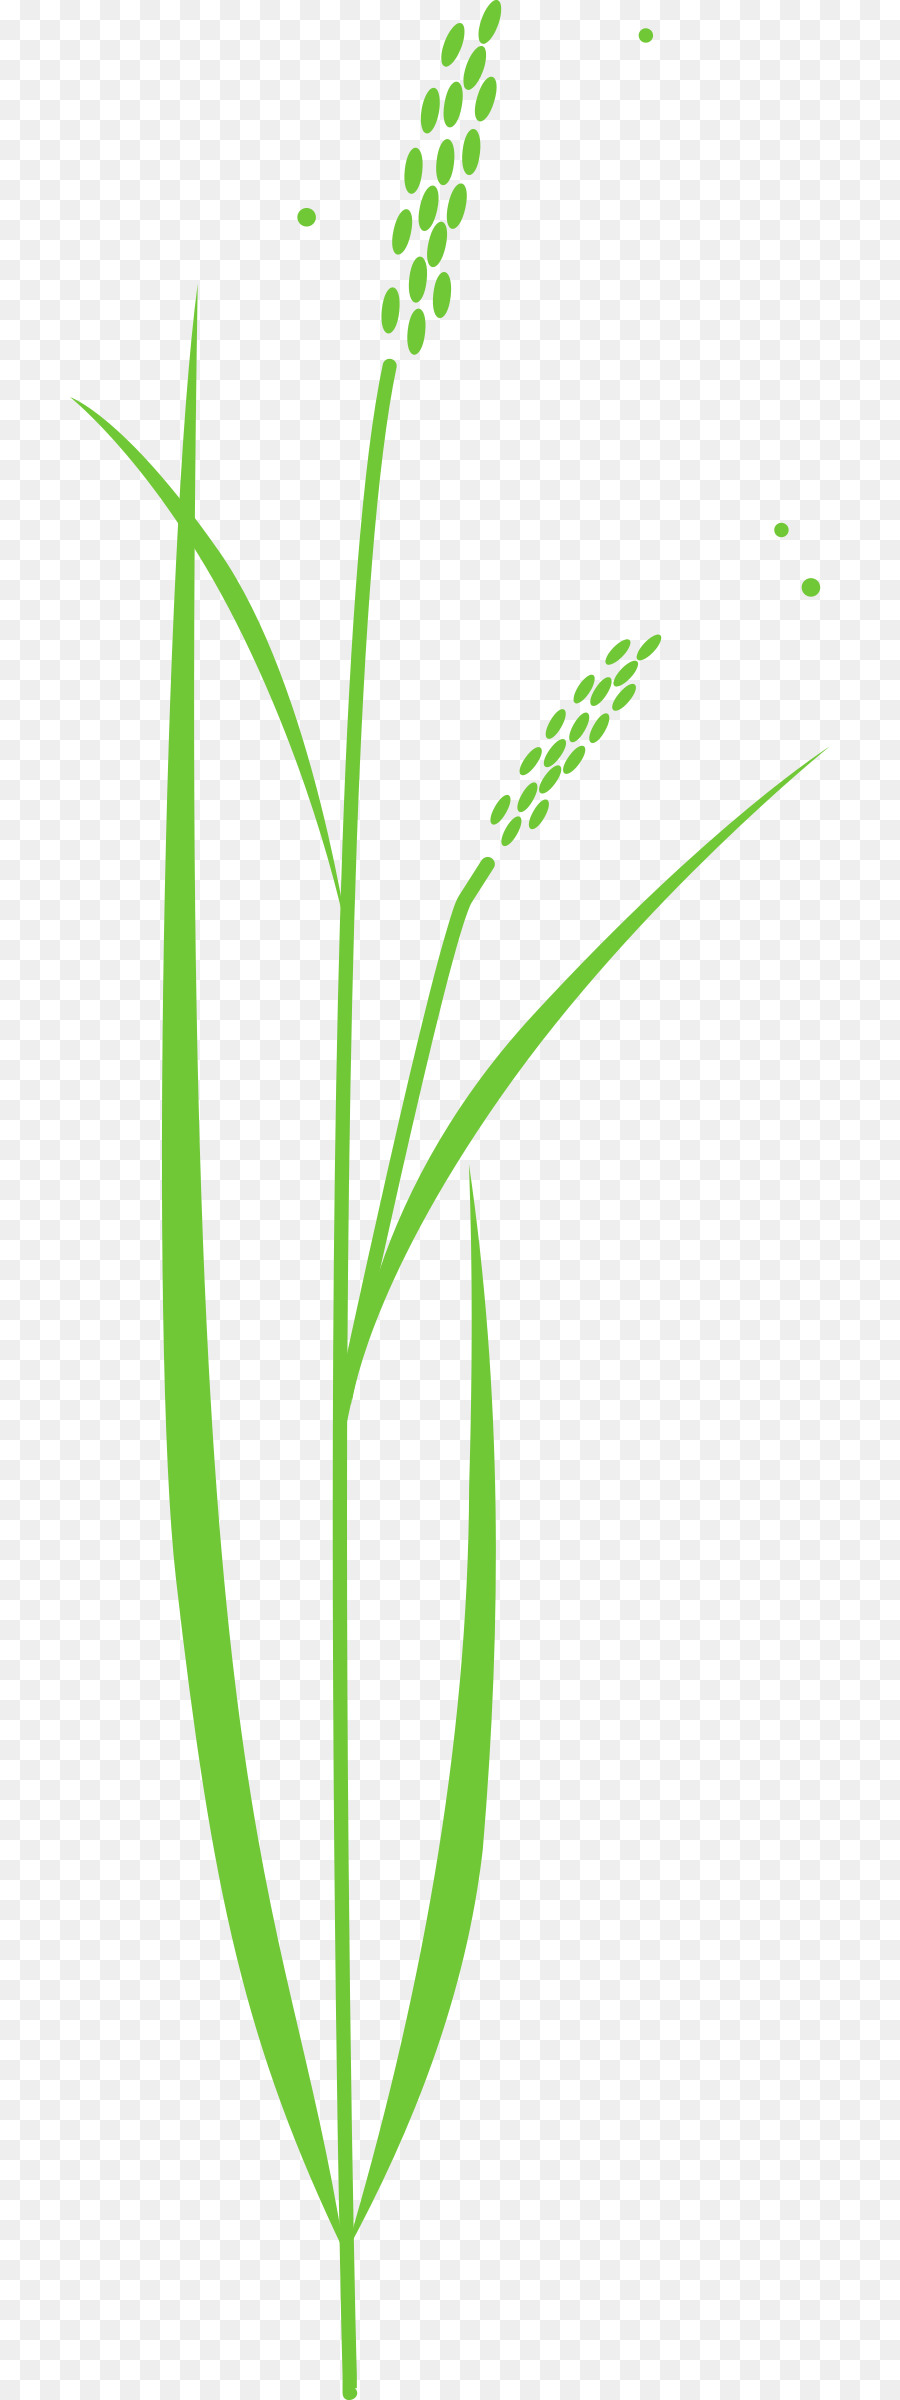 Clip art transprent png. Cereal clipart rice plant